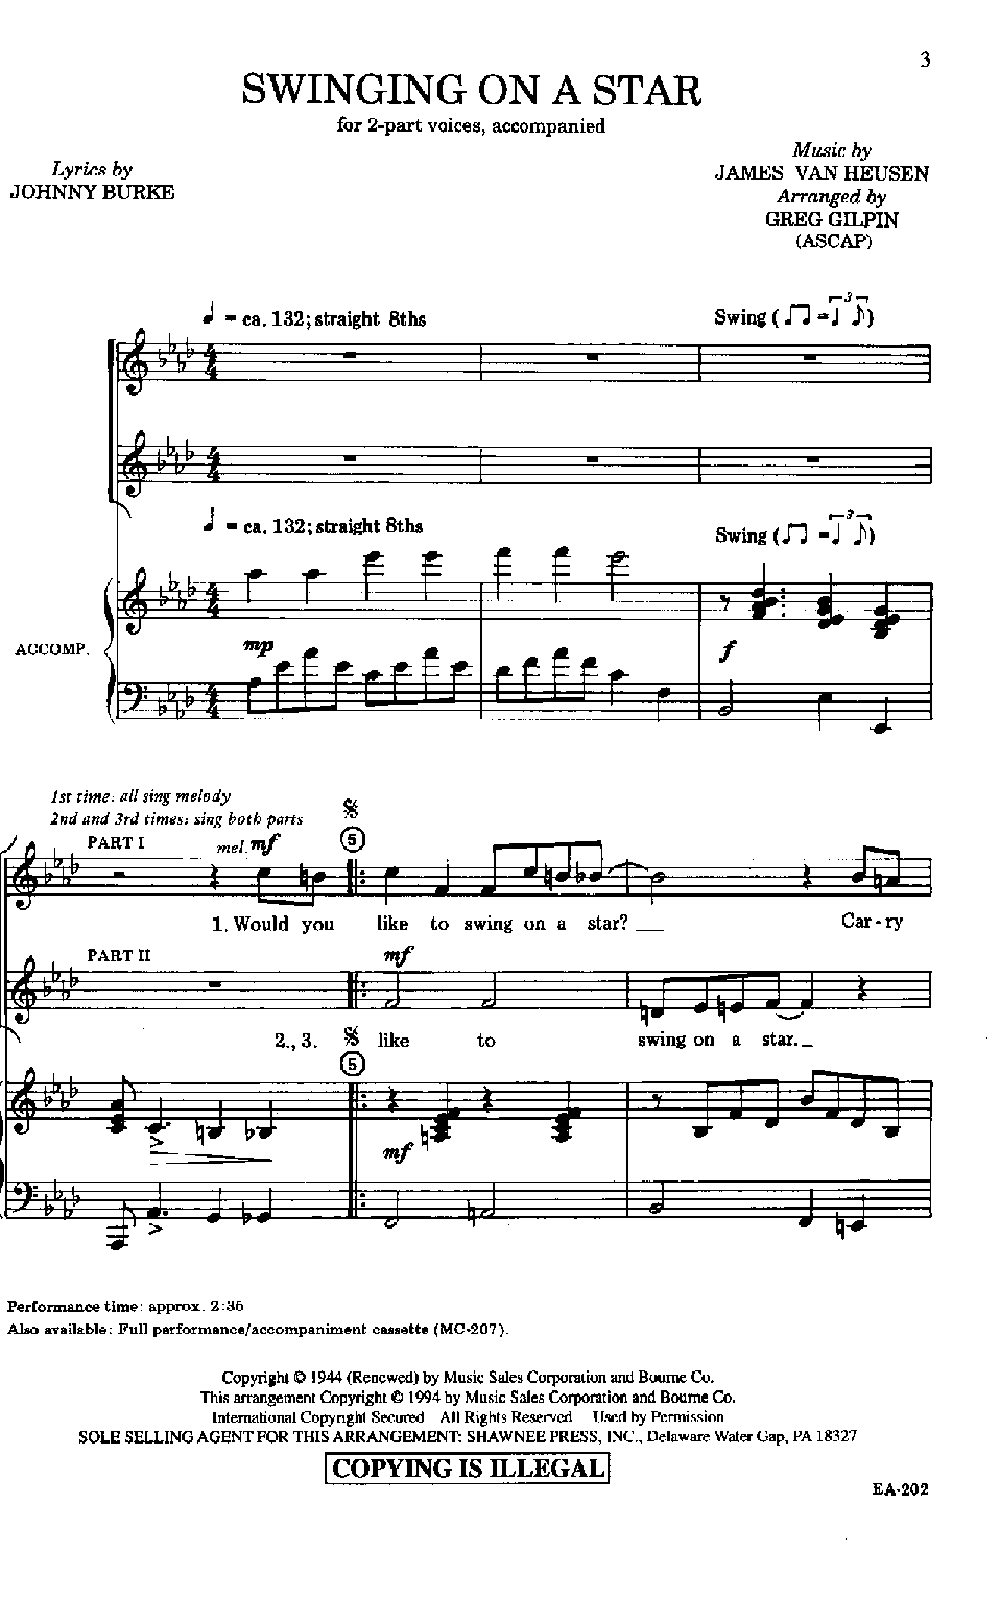 Swinging on a star sheet music